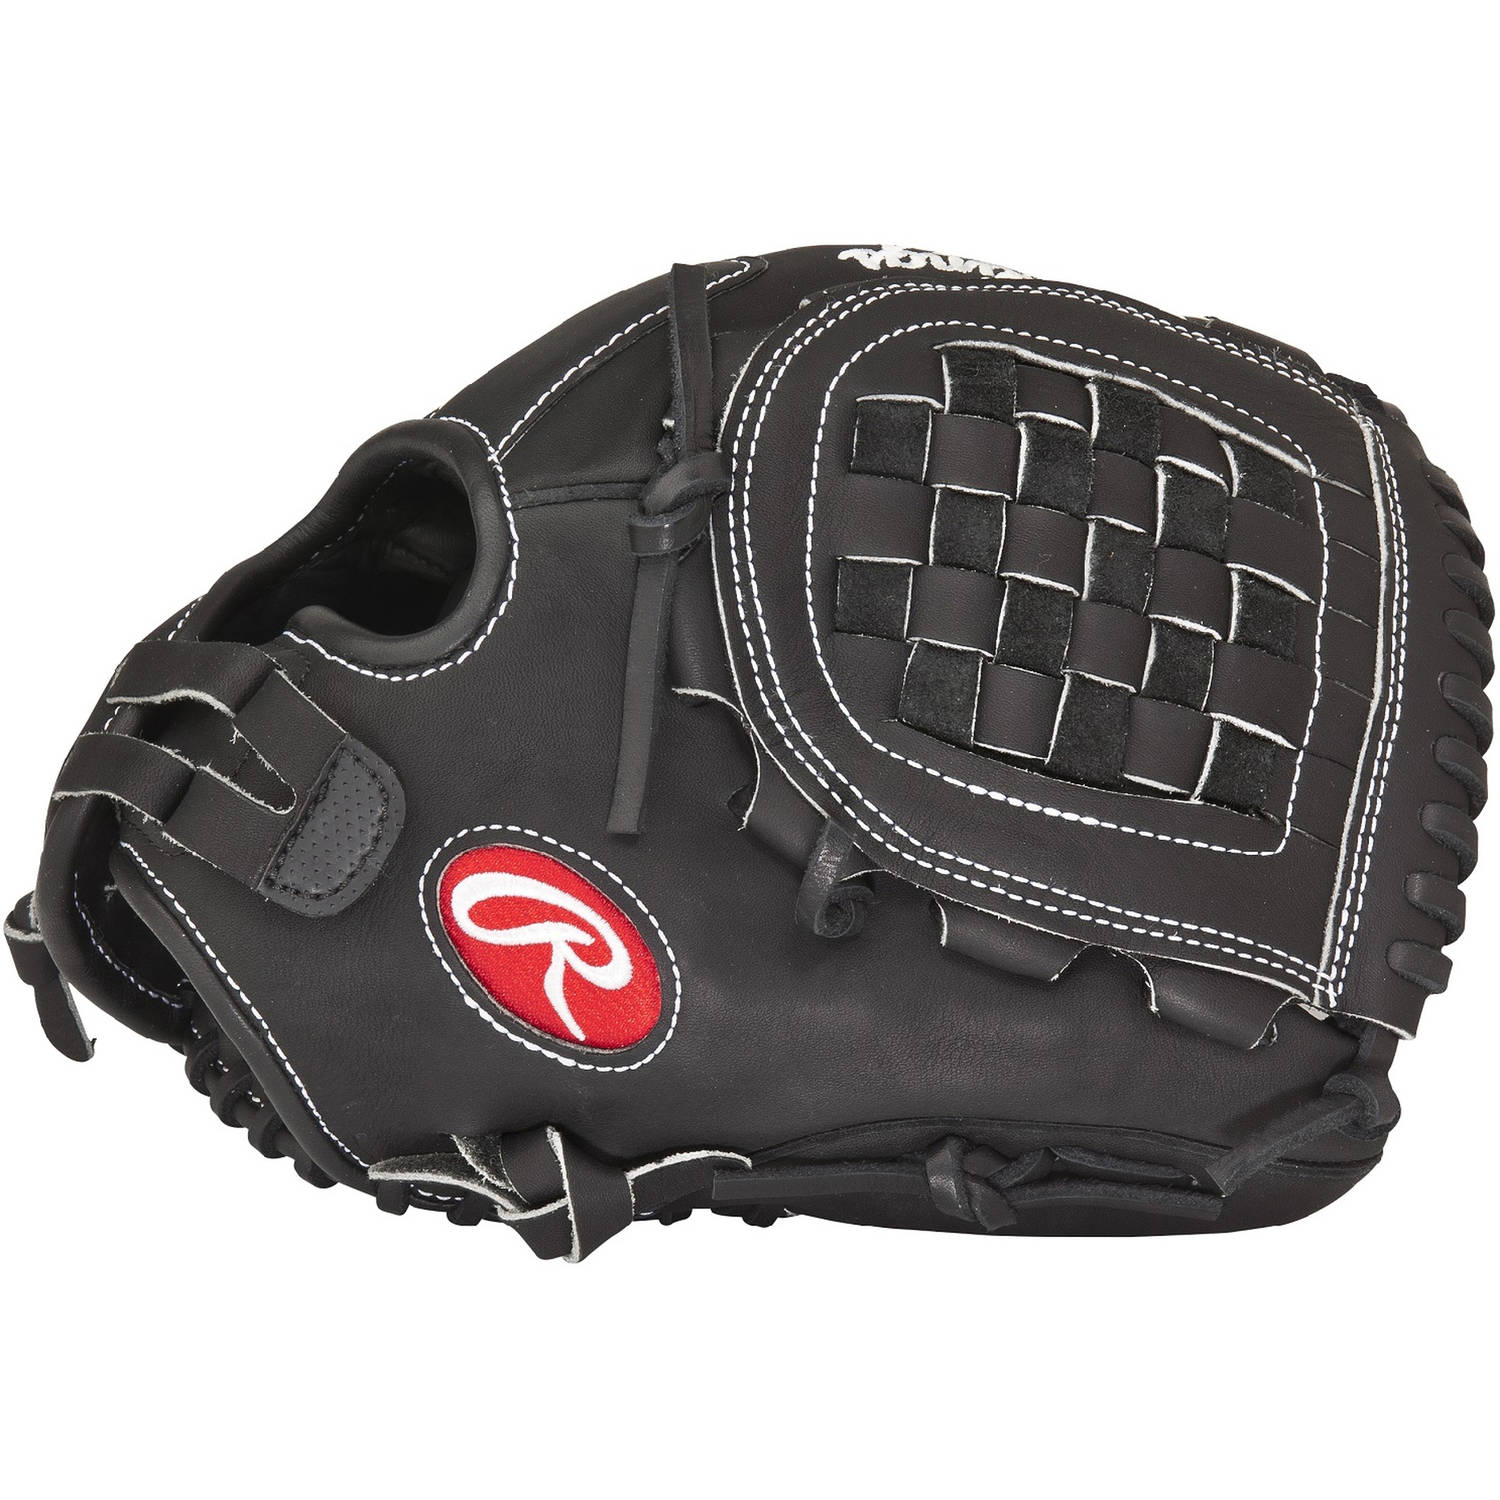 "Rawlings Heart of the Hide 12"" Strap Back Softball Glove by Rawlings"